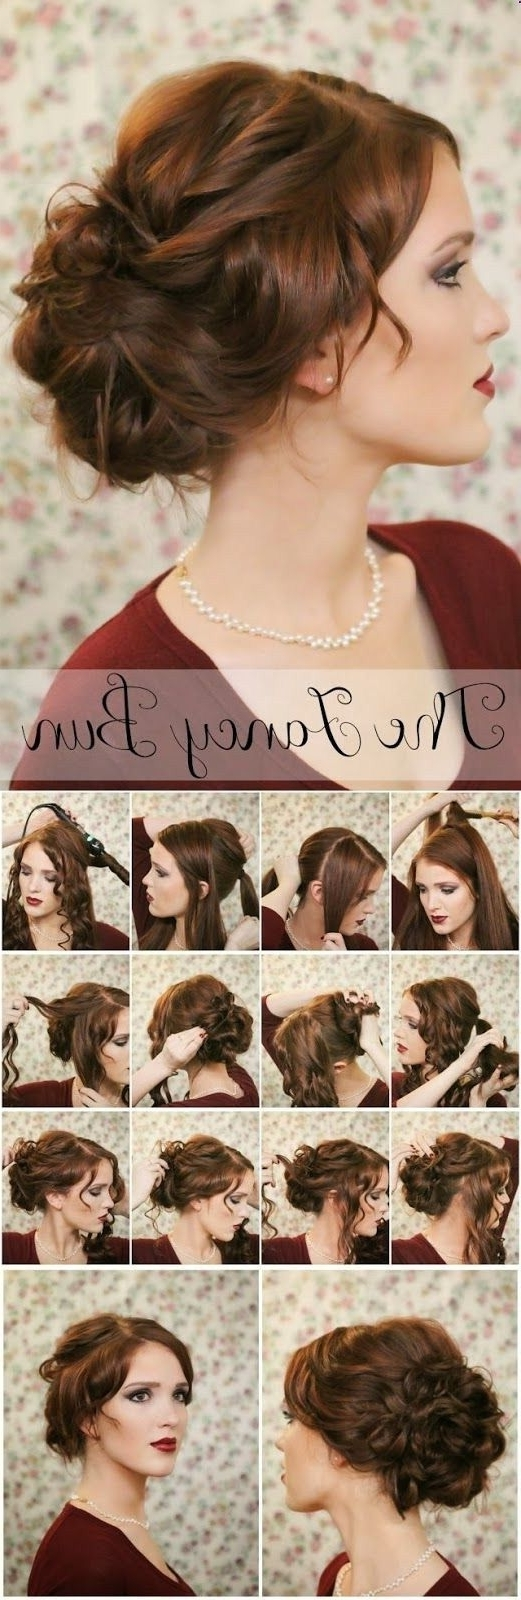 16 Pretty And Chic Updos For Medium Length Hair | Medium Length With Regard To Chic Updos For Long Hair (View 1 of 15)